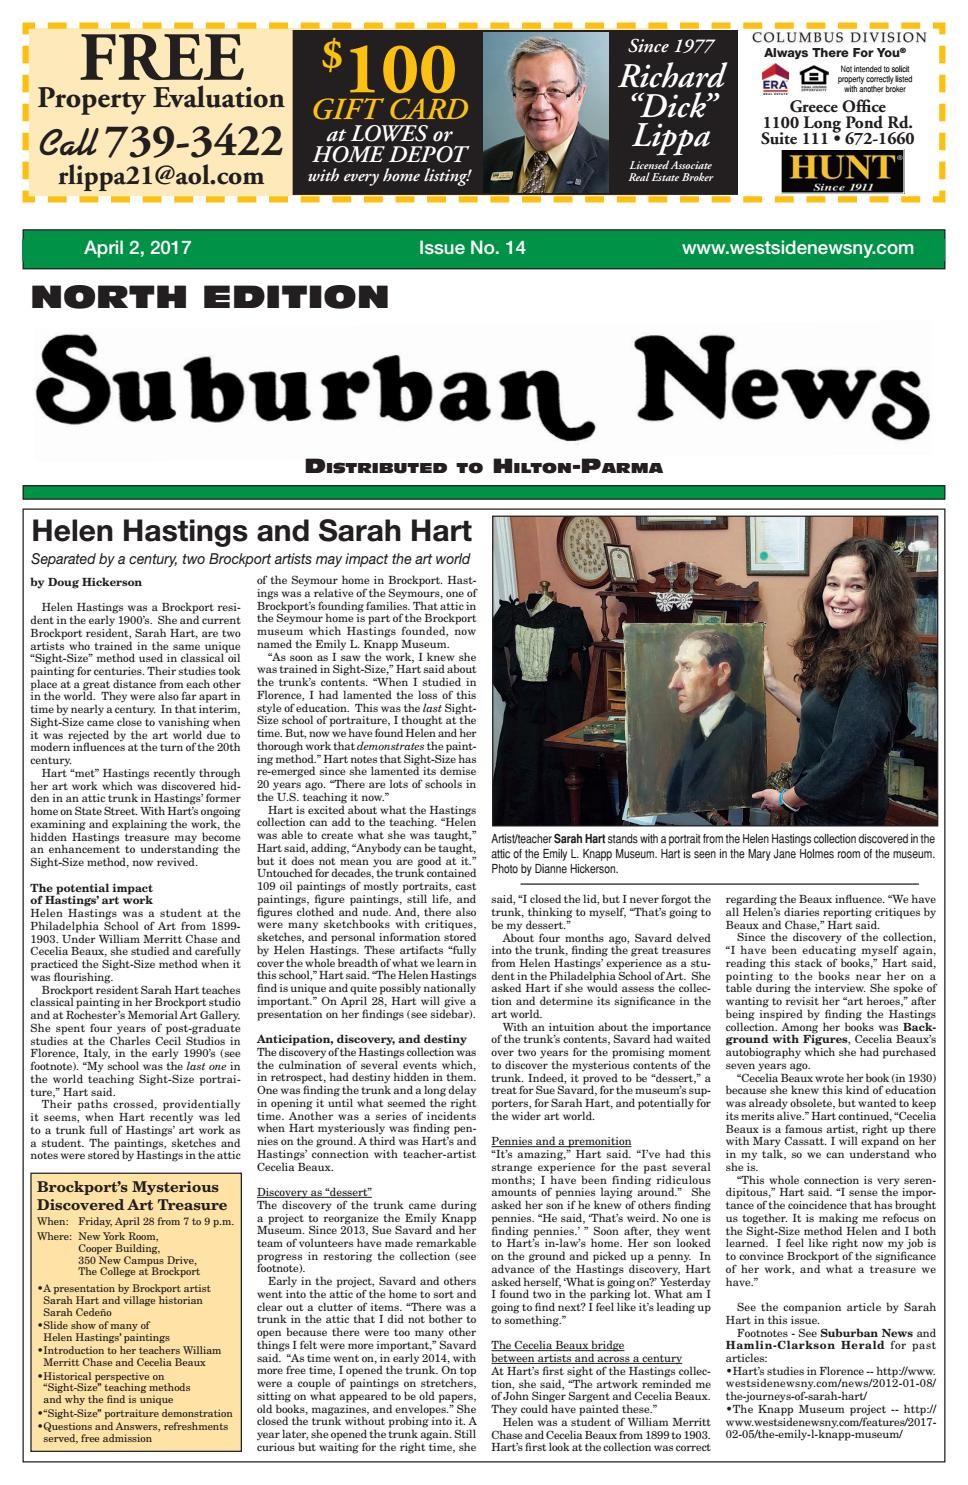 Suburban News North Edition April By Westside News Inc - Invoice statement template free rocco's online store